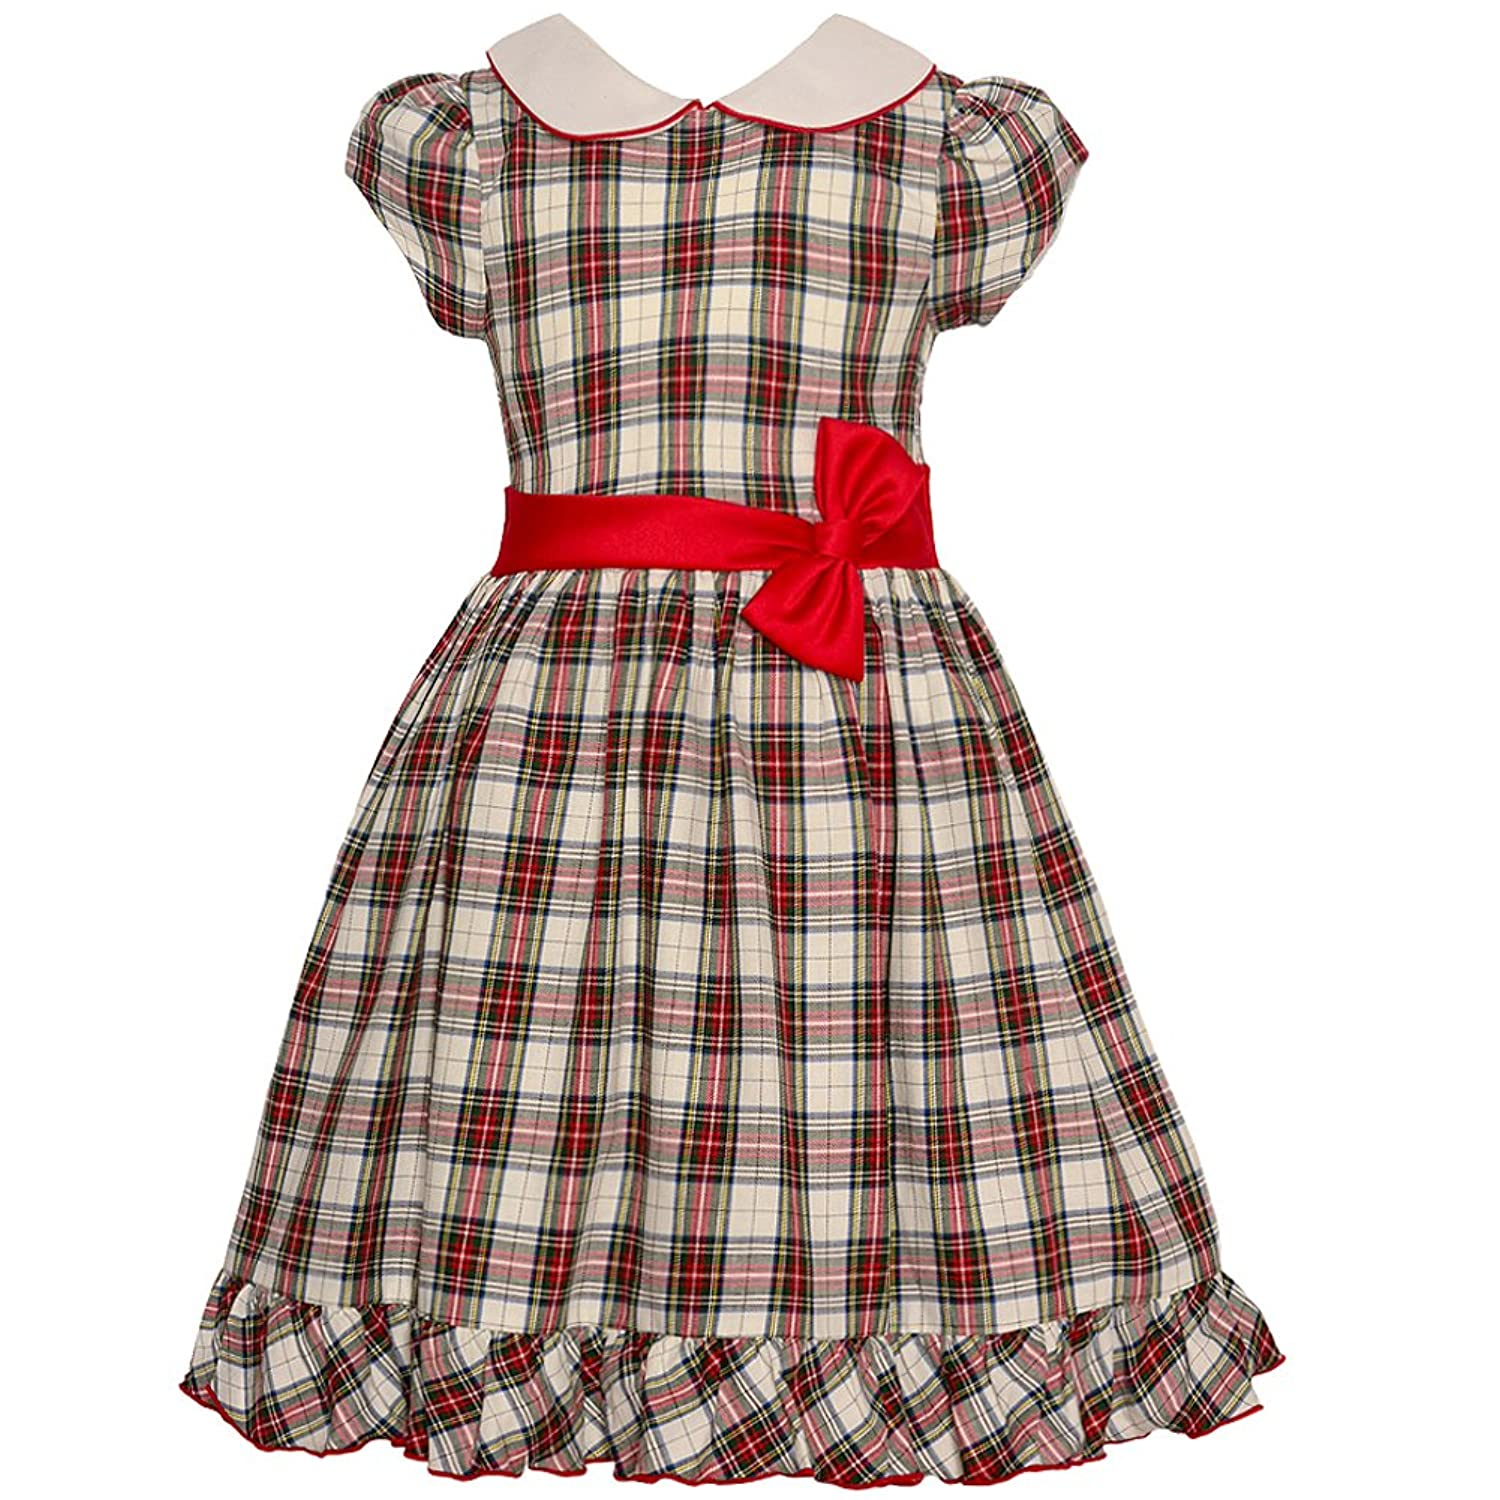 Vintage Style Children's Clothing: Girls, Boys, Baby, Toddler Bonnie Jean Girls Collared Cotton Dress $39.20 AT vintagedancer.com